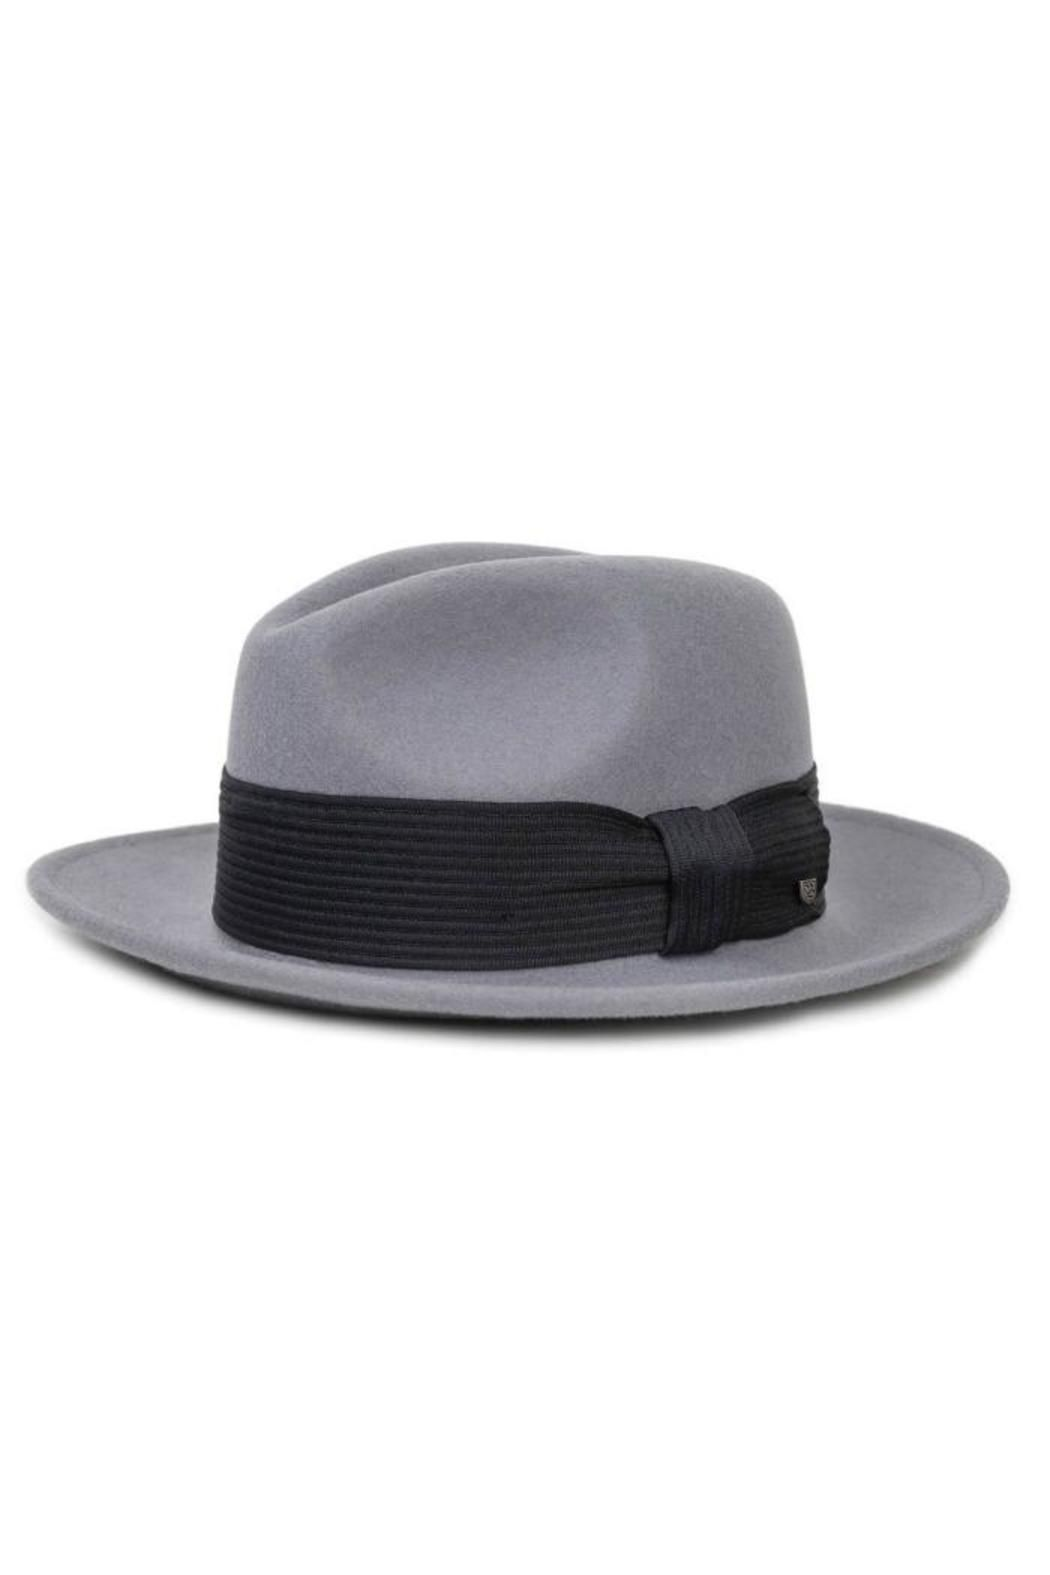 67c7498f700 The Nelson is a medium brim felt fedora with a quilted grosgrain band.  Nelson Fedora by Brixton. Accessories - Hats Providence Rhode Island